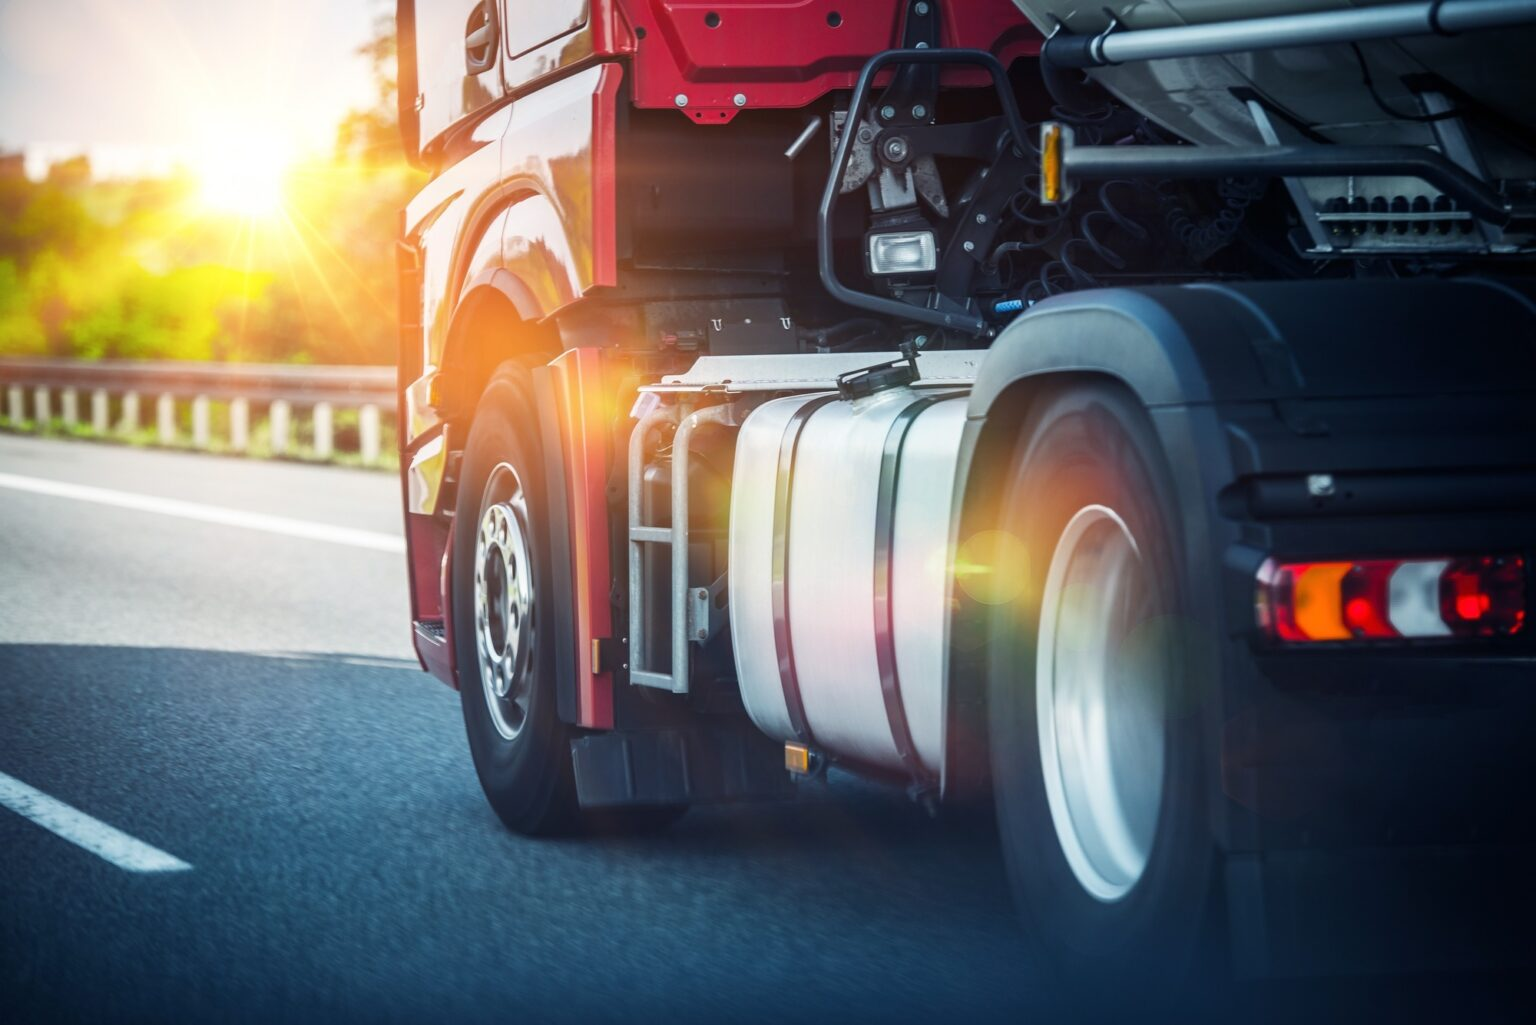 Bump in the Road: What to Do after a Truck Accident